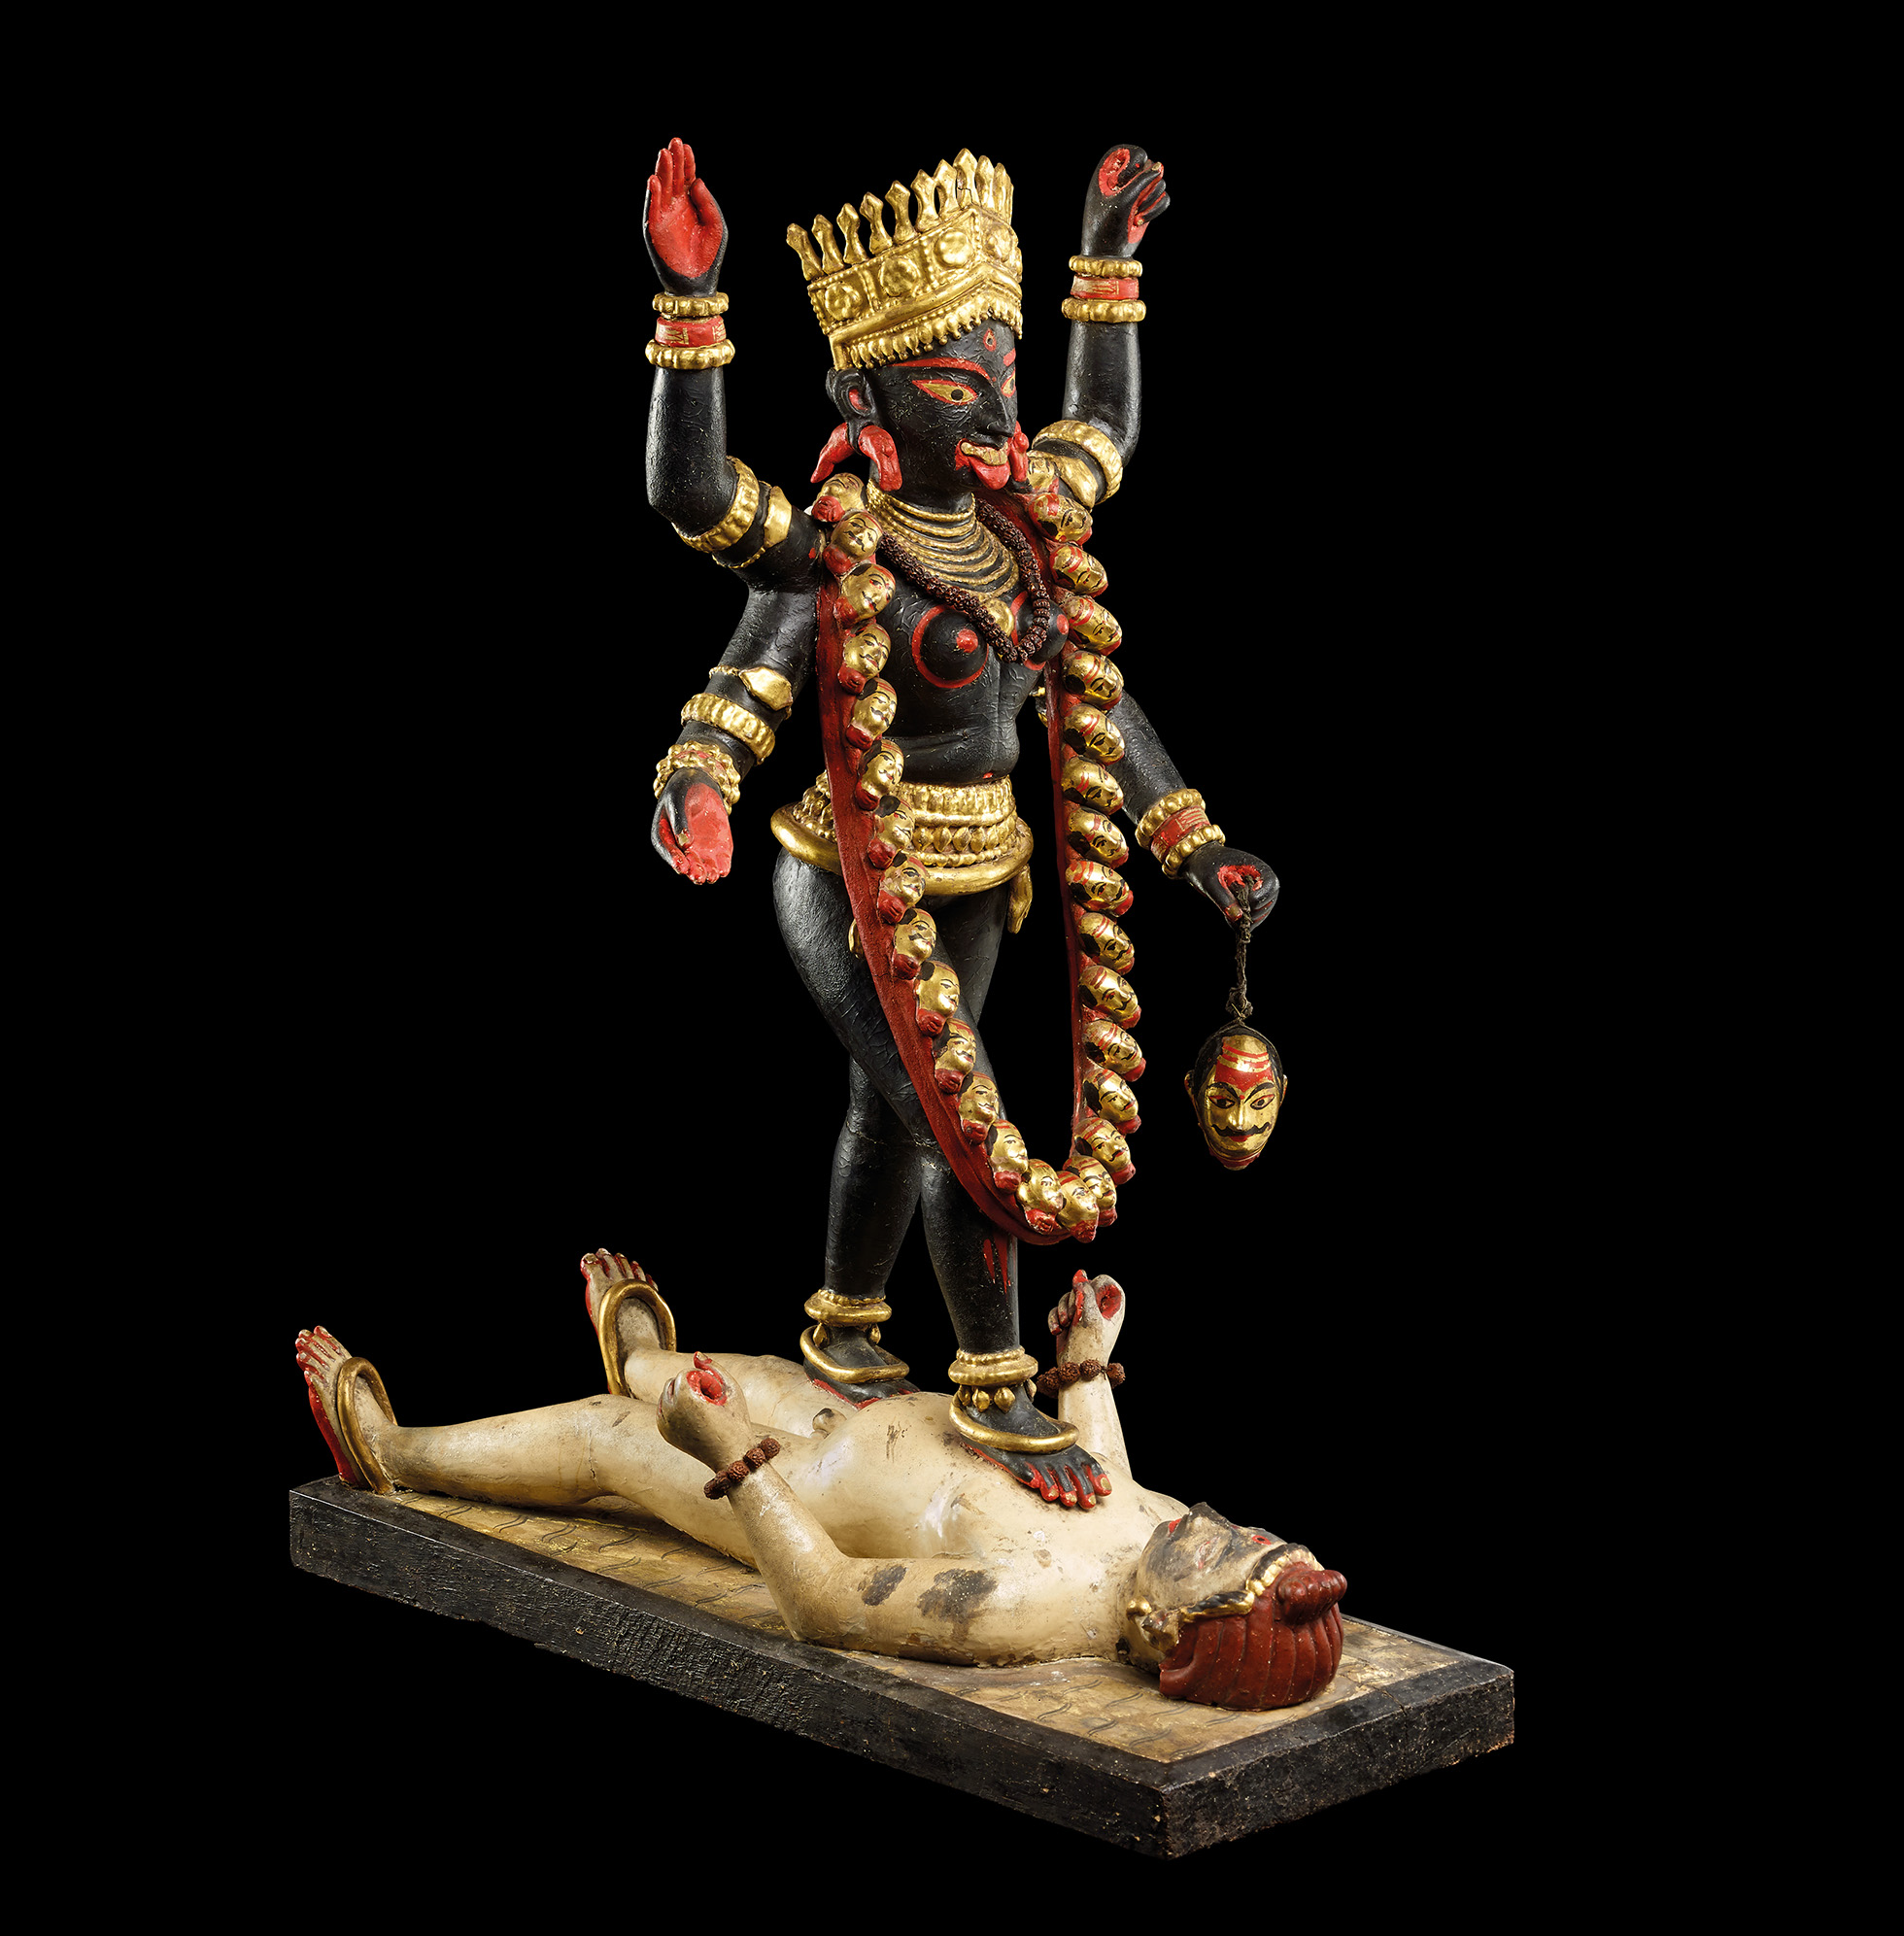 Sculptire of the goddess Kali striding over Shiva, who lies on the ground. Kali wears a gold crown and a garland of severed heads.